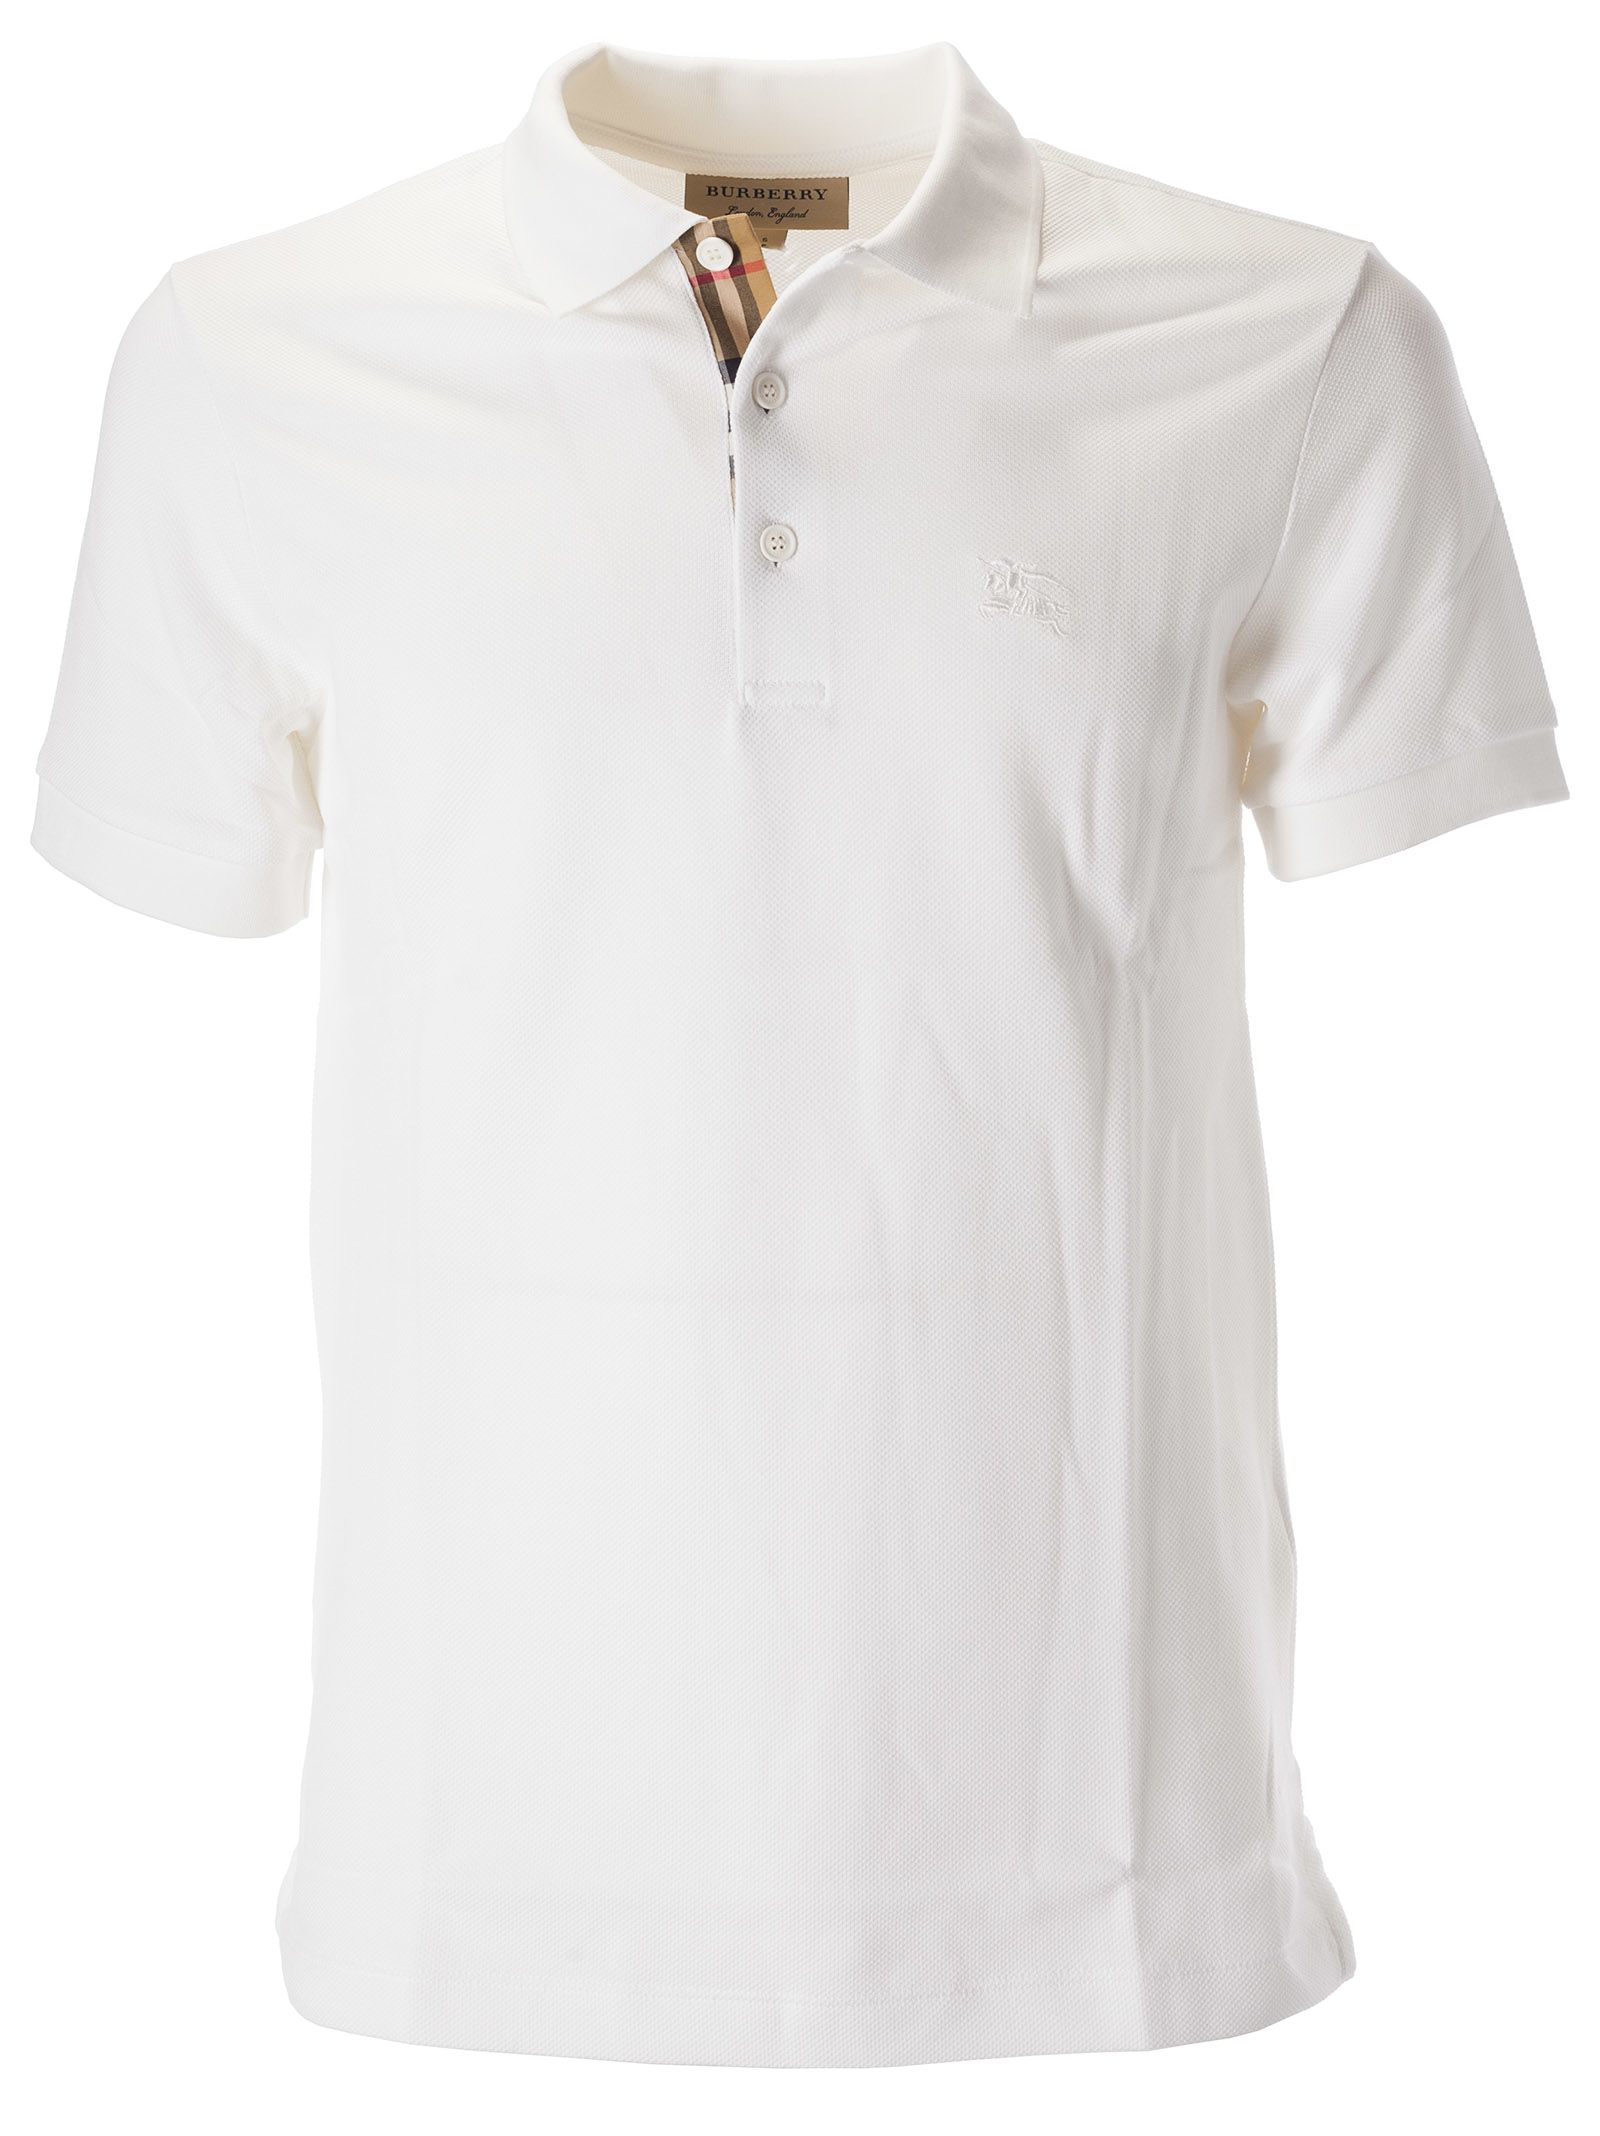 027741617 Burberry Burberry Classic Polo Shirt - White - 10806519